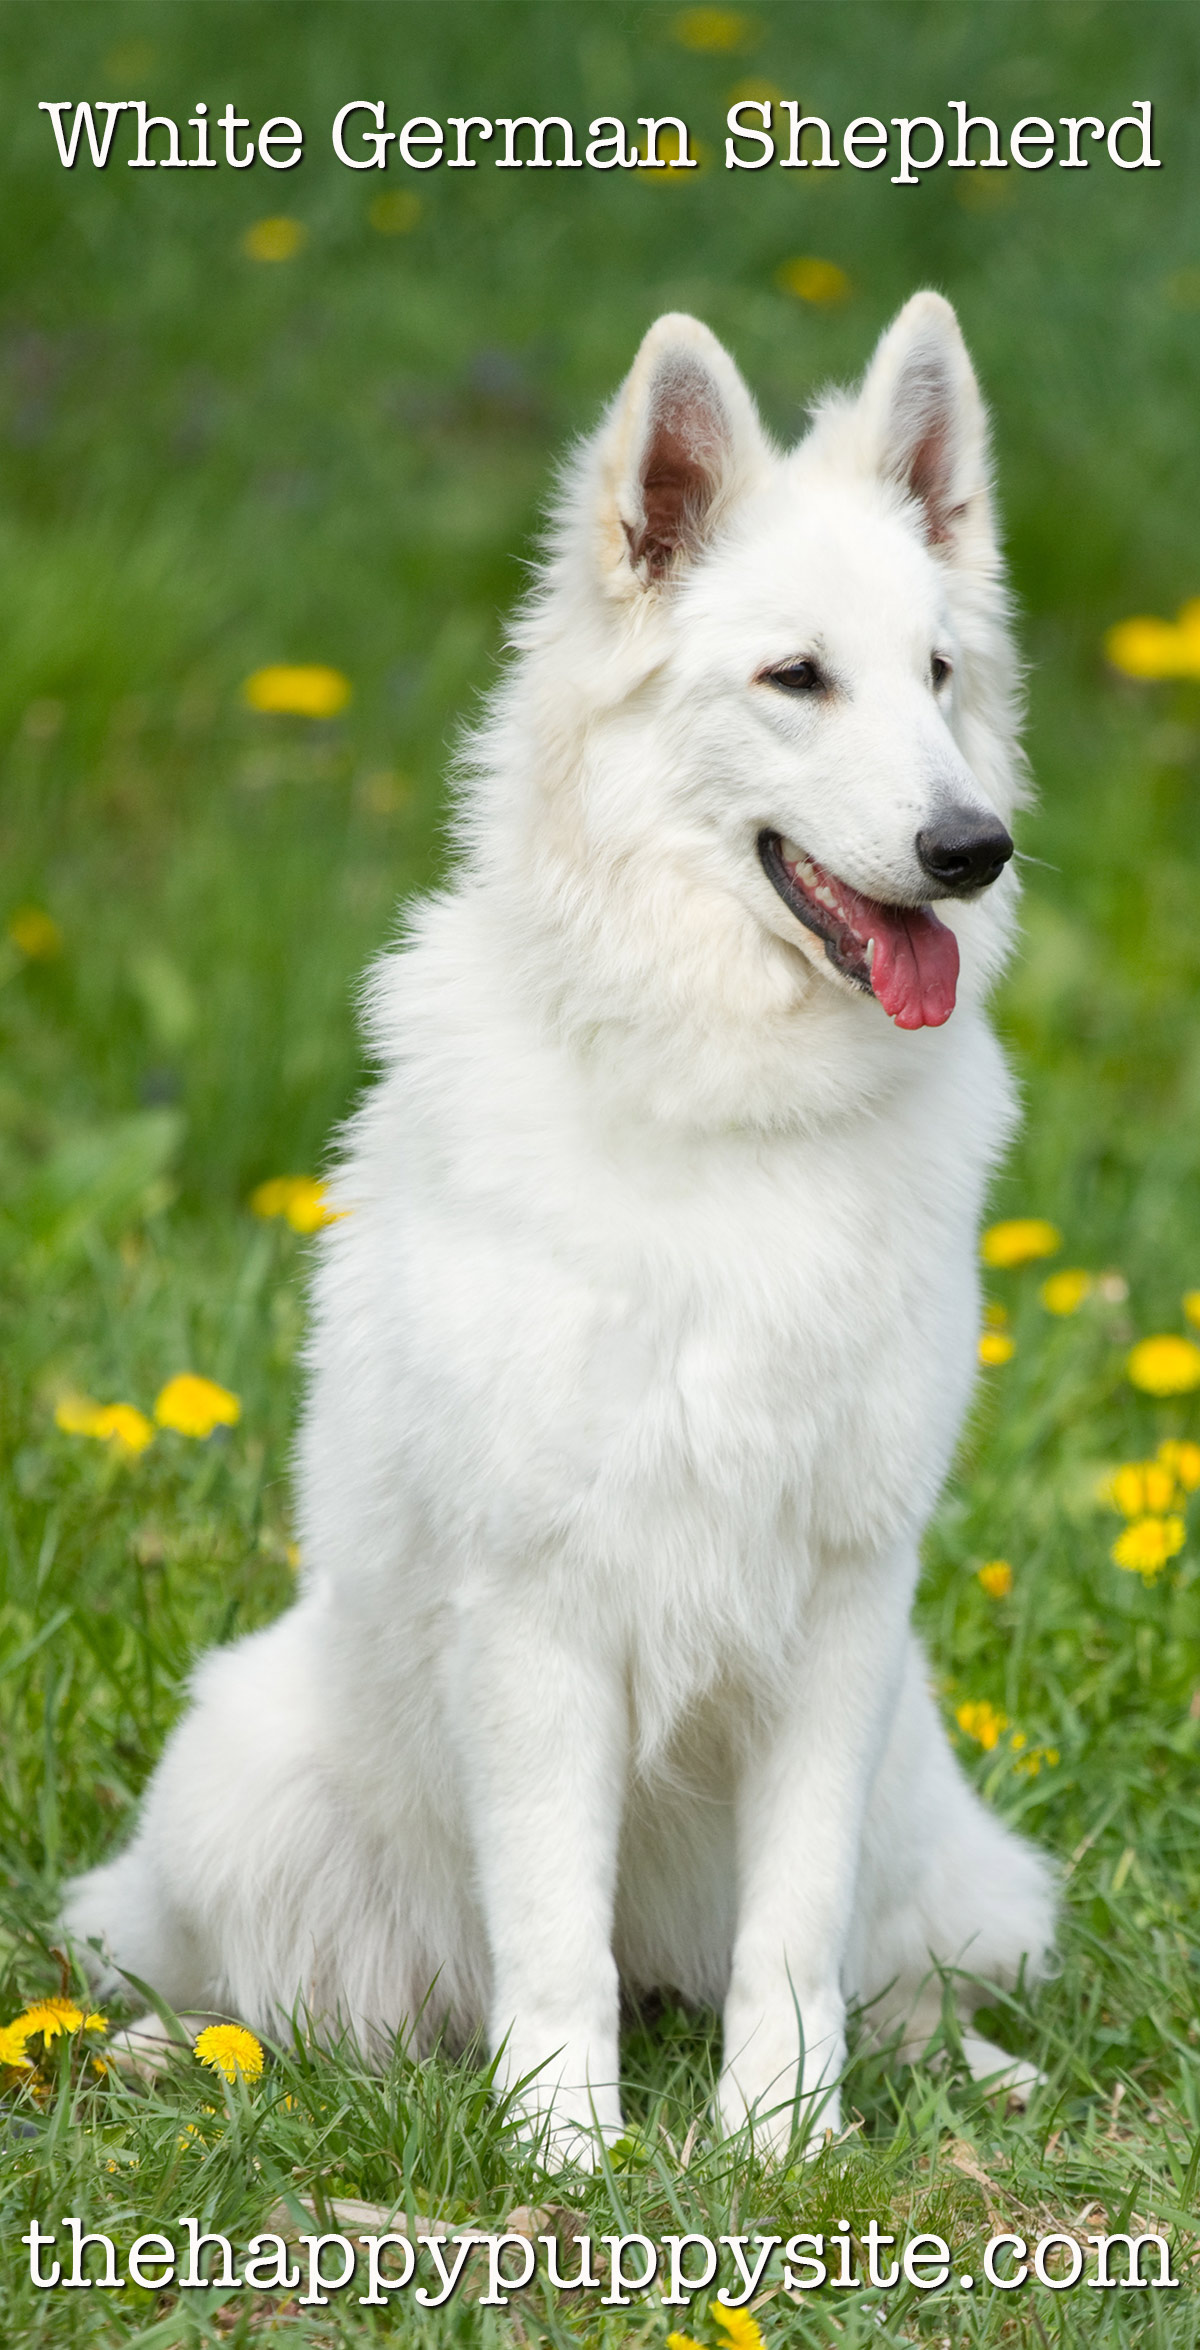 White German Shepherd Dogs